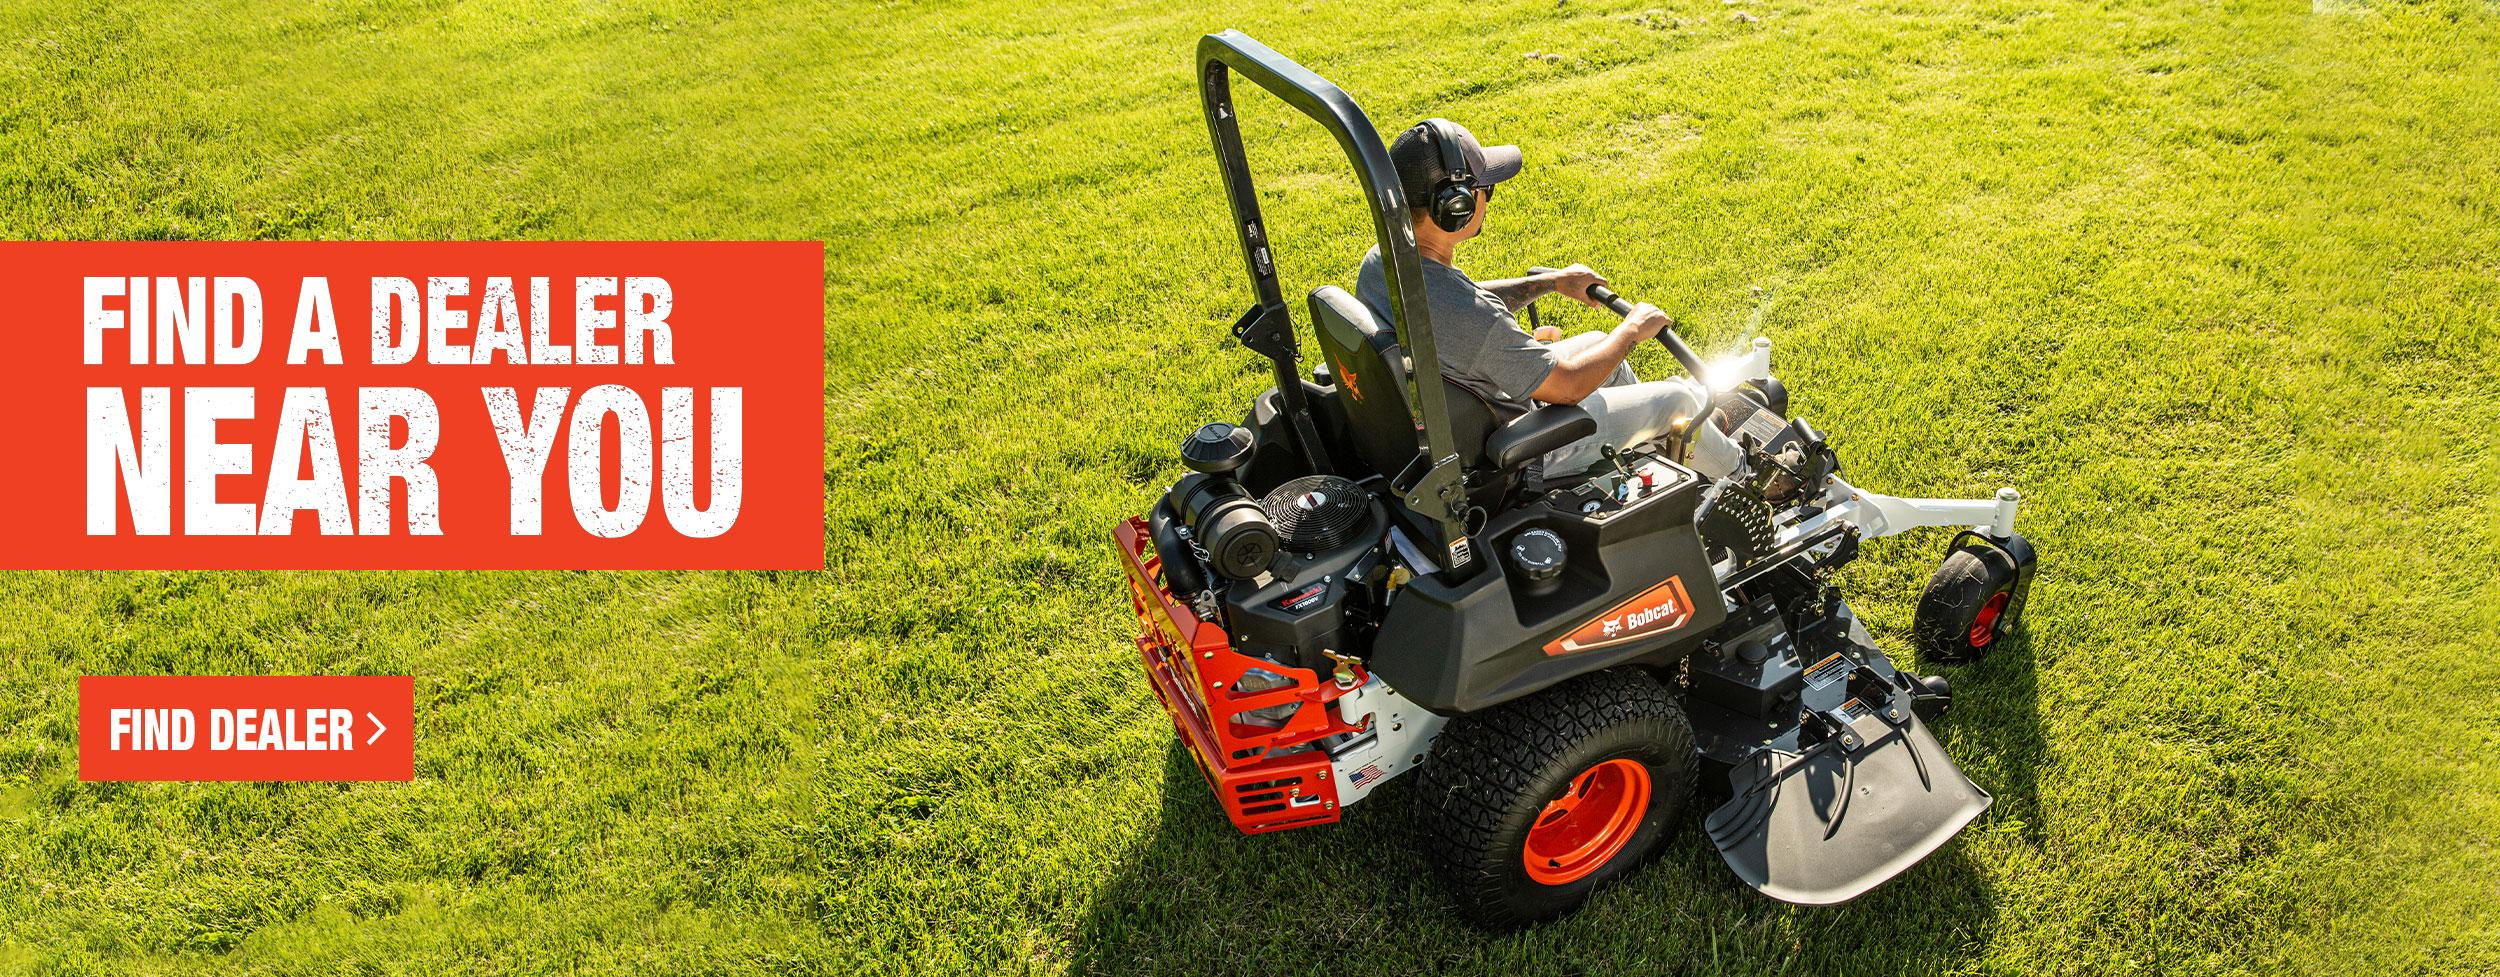 Bobcat ZT7000 Mower Overhead View With Find A Dealer Call To Action